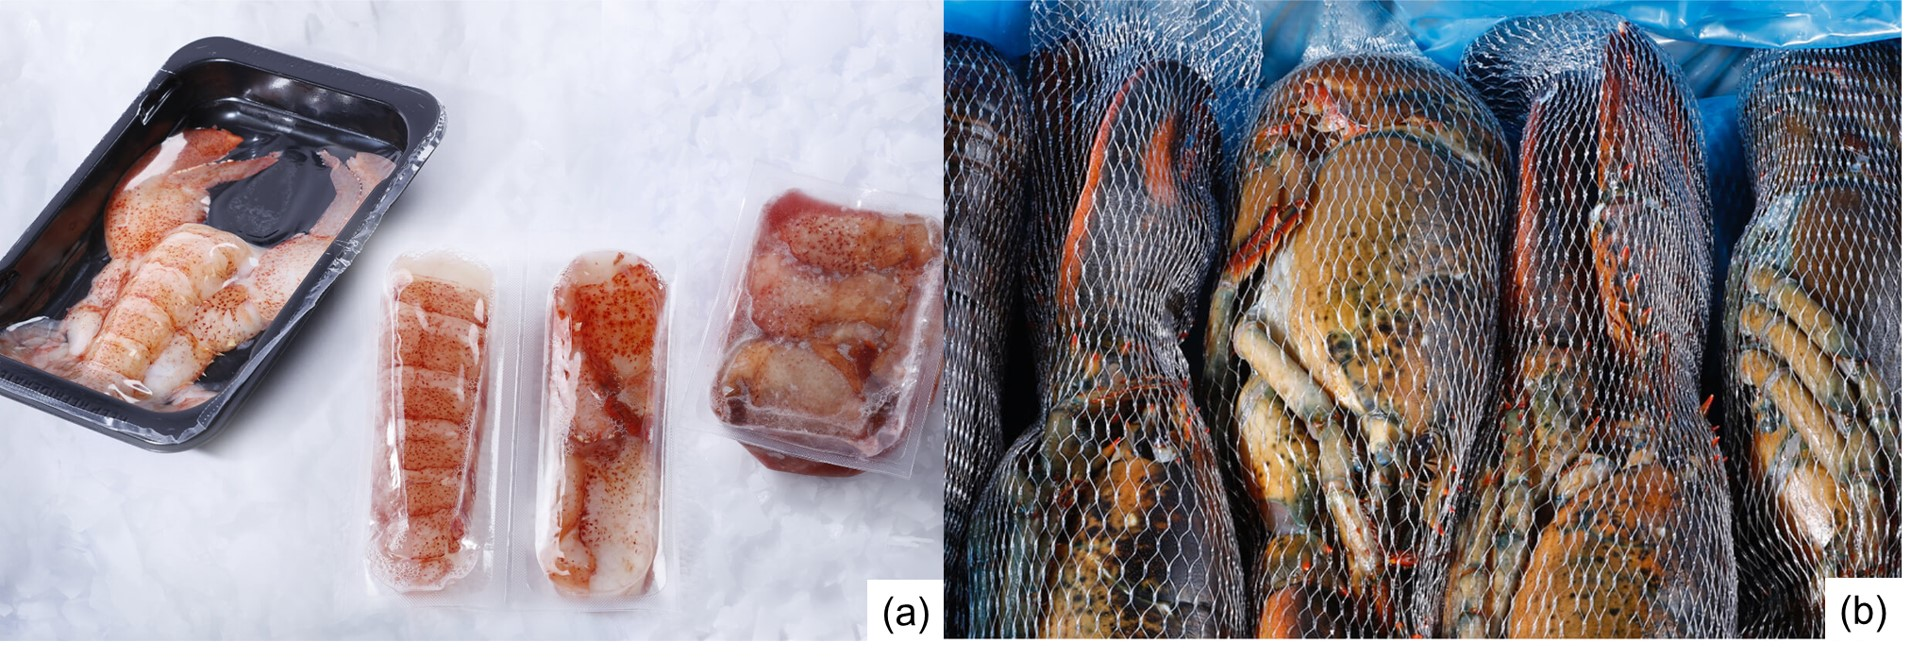 Fig. 3. Uncooked HPP lobster commercial presentations: (a) de-shelled lobster, tails and claws; (b) HPP lobster with shell in place. Image source: Westmorland Fisheries.